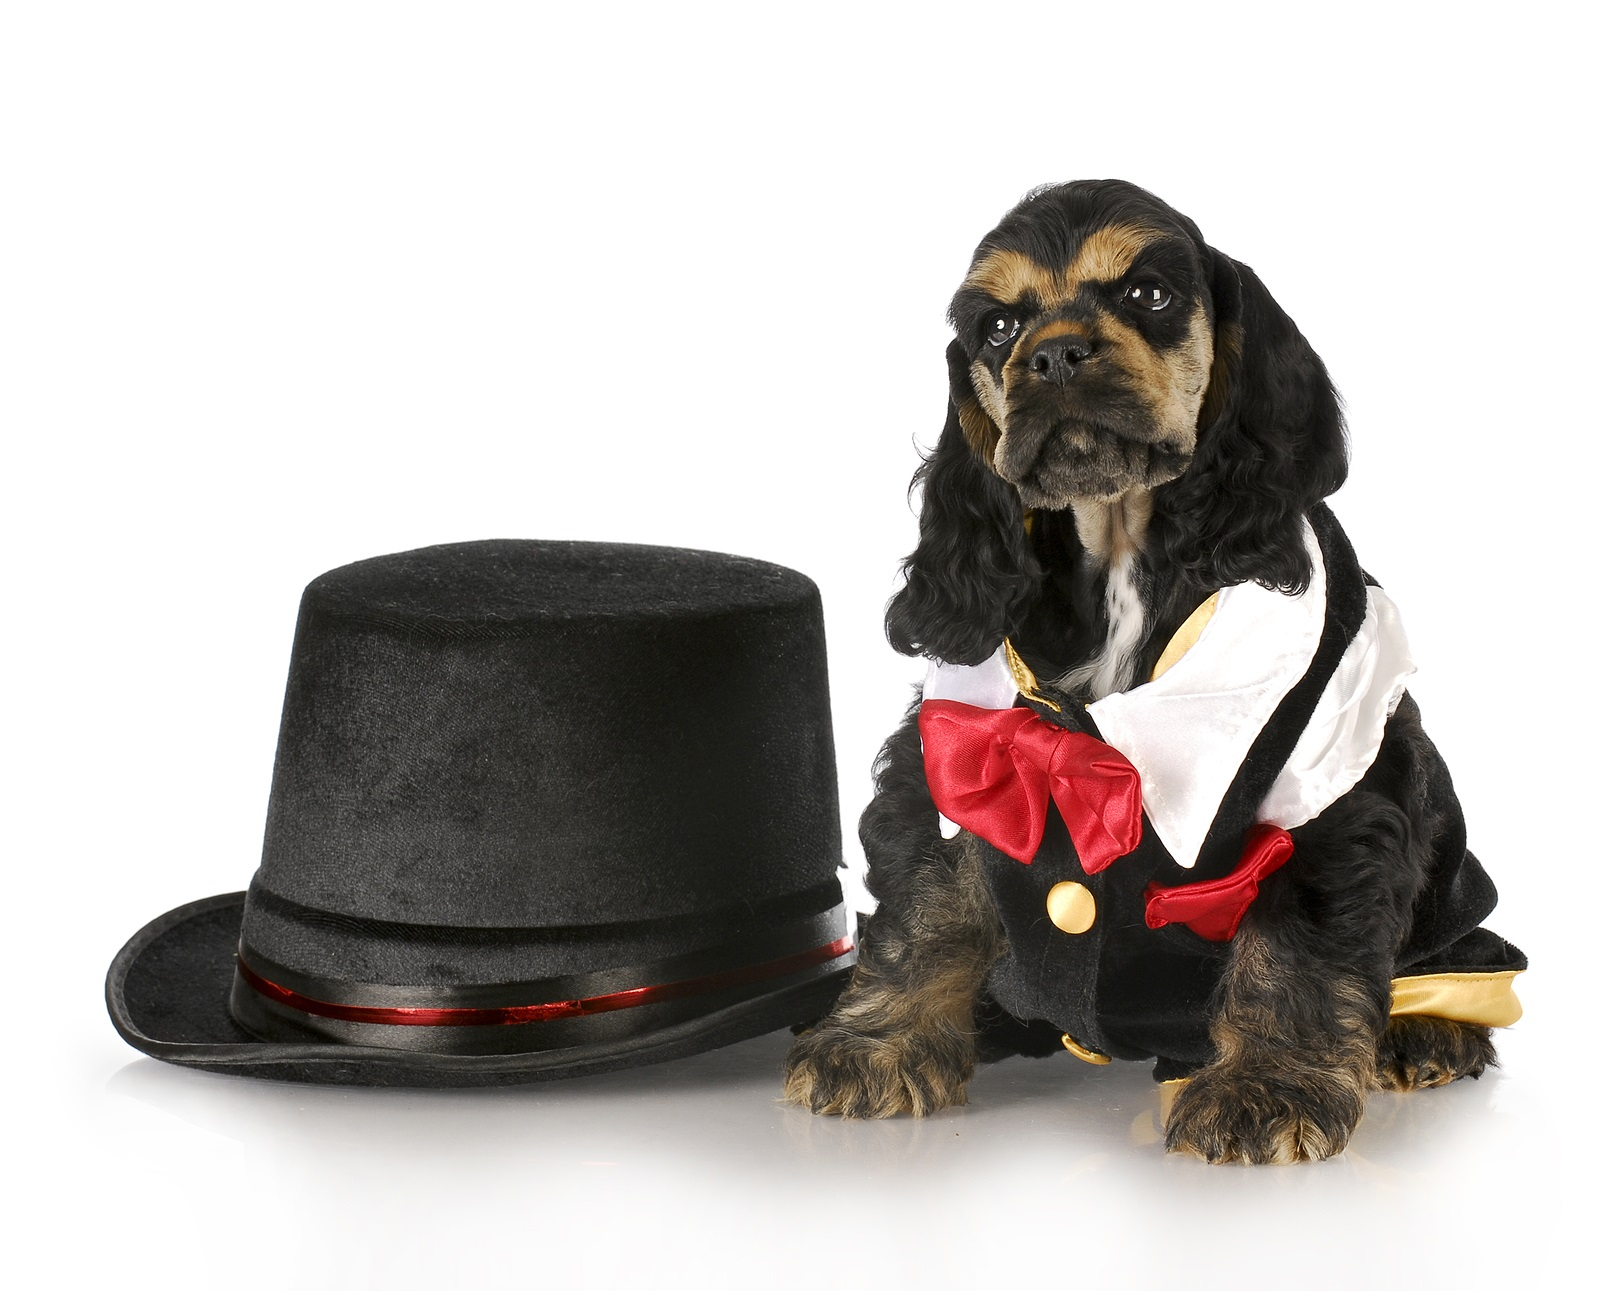 BigStock Photo.  I gotta say, I think the whole puppy would fit in that hat!